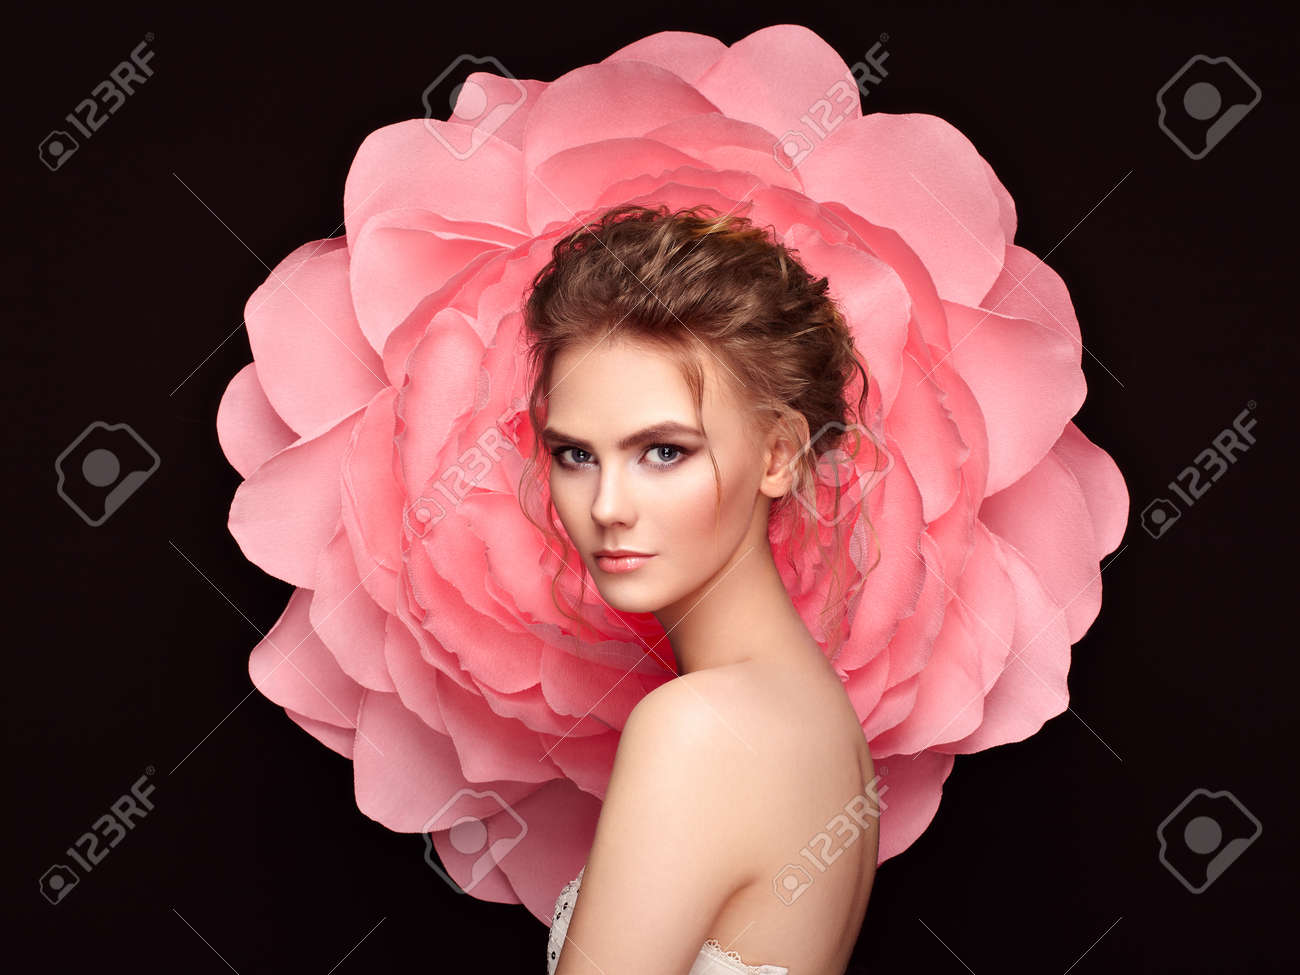 Beautiful woman on the background of a large flower. Beauty summer model girl with pink peony. Young woman with elegant hairstyle and makeup. Fashion photo - 84923132